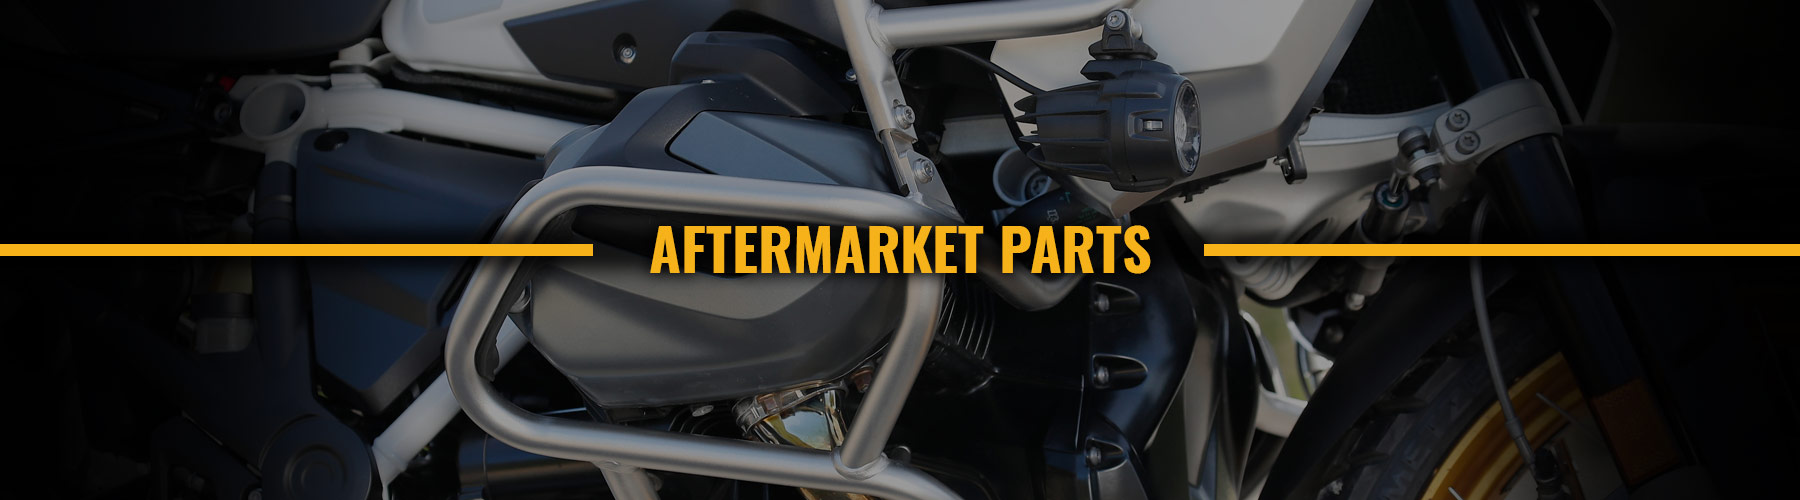 Twisted Trails - Aftermarket Parts